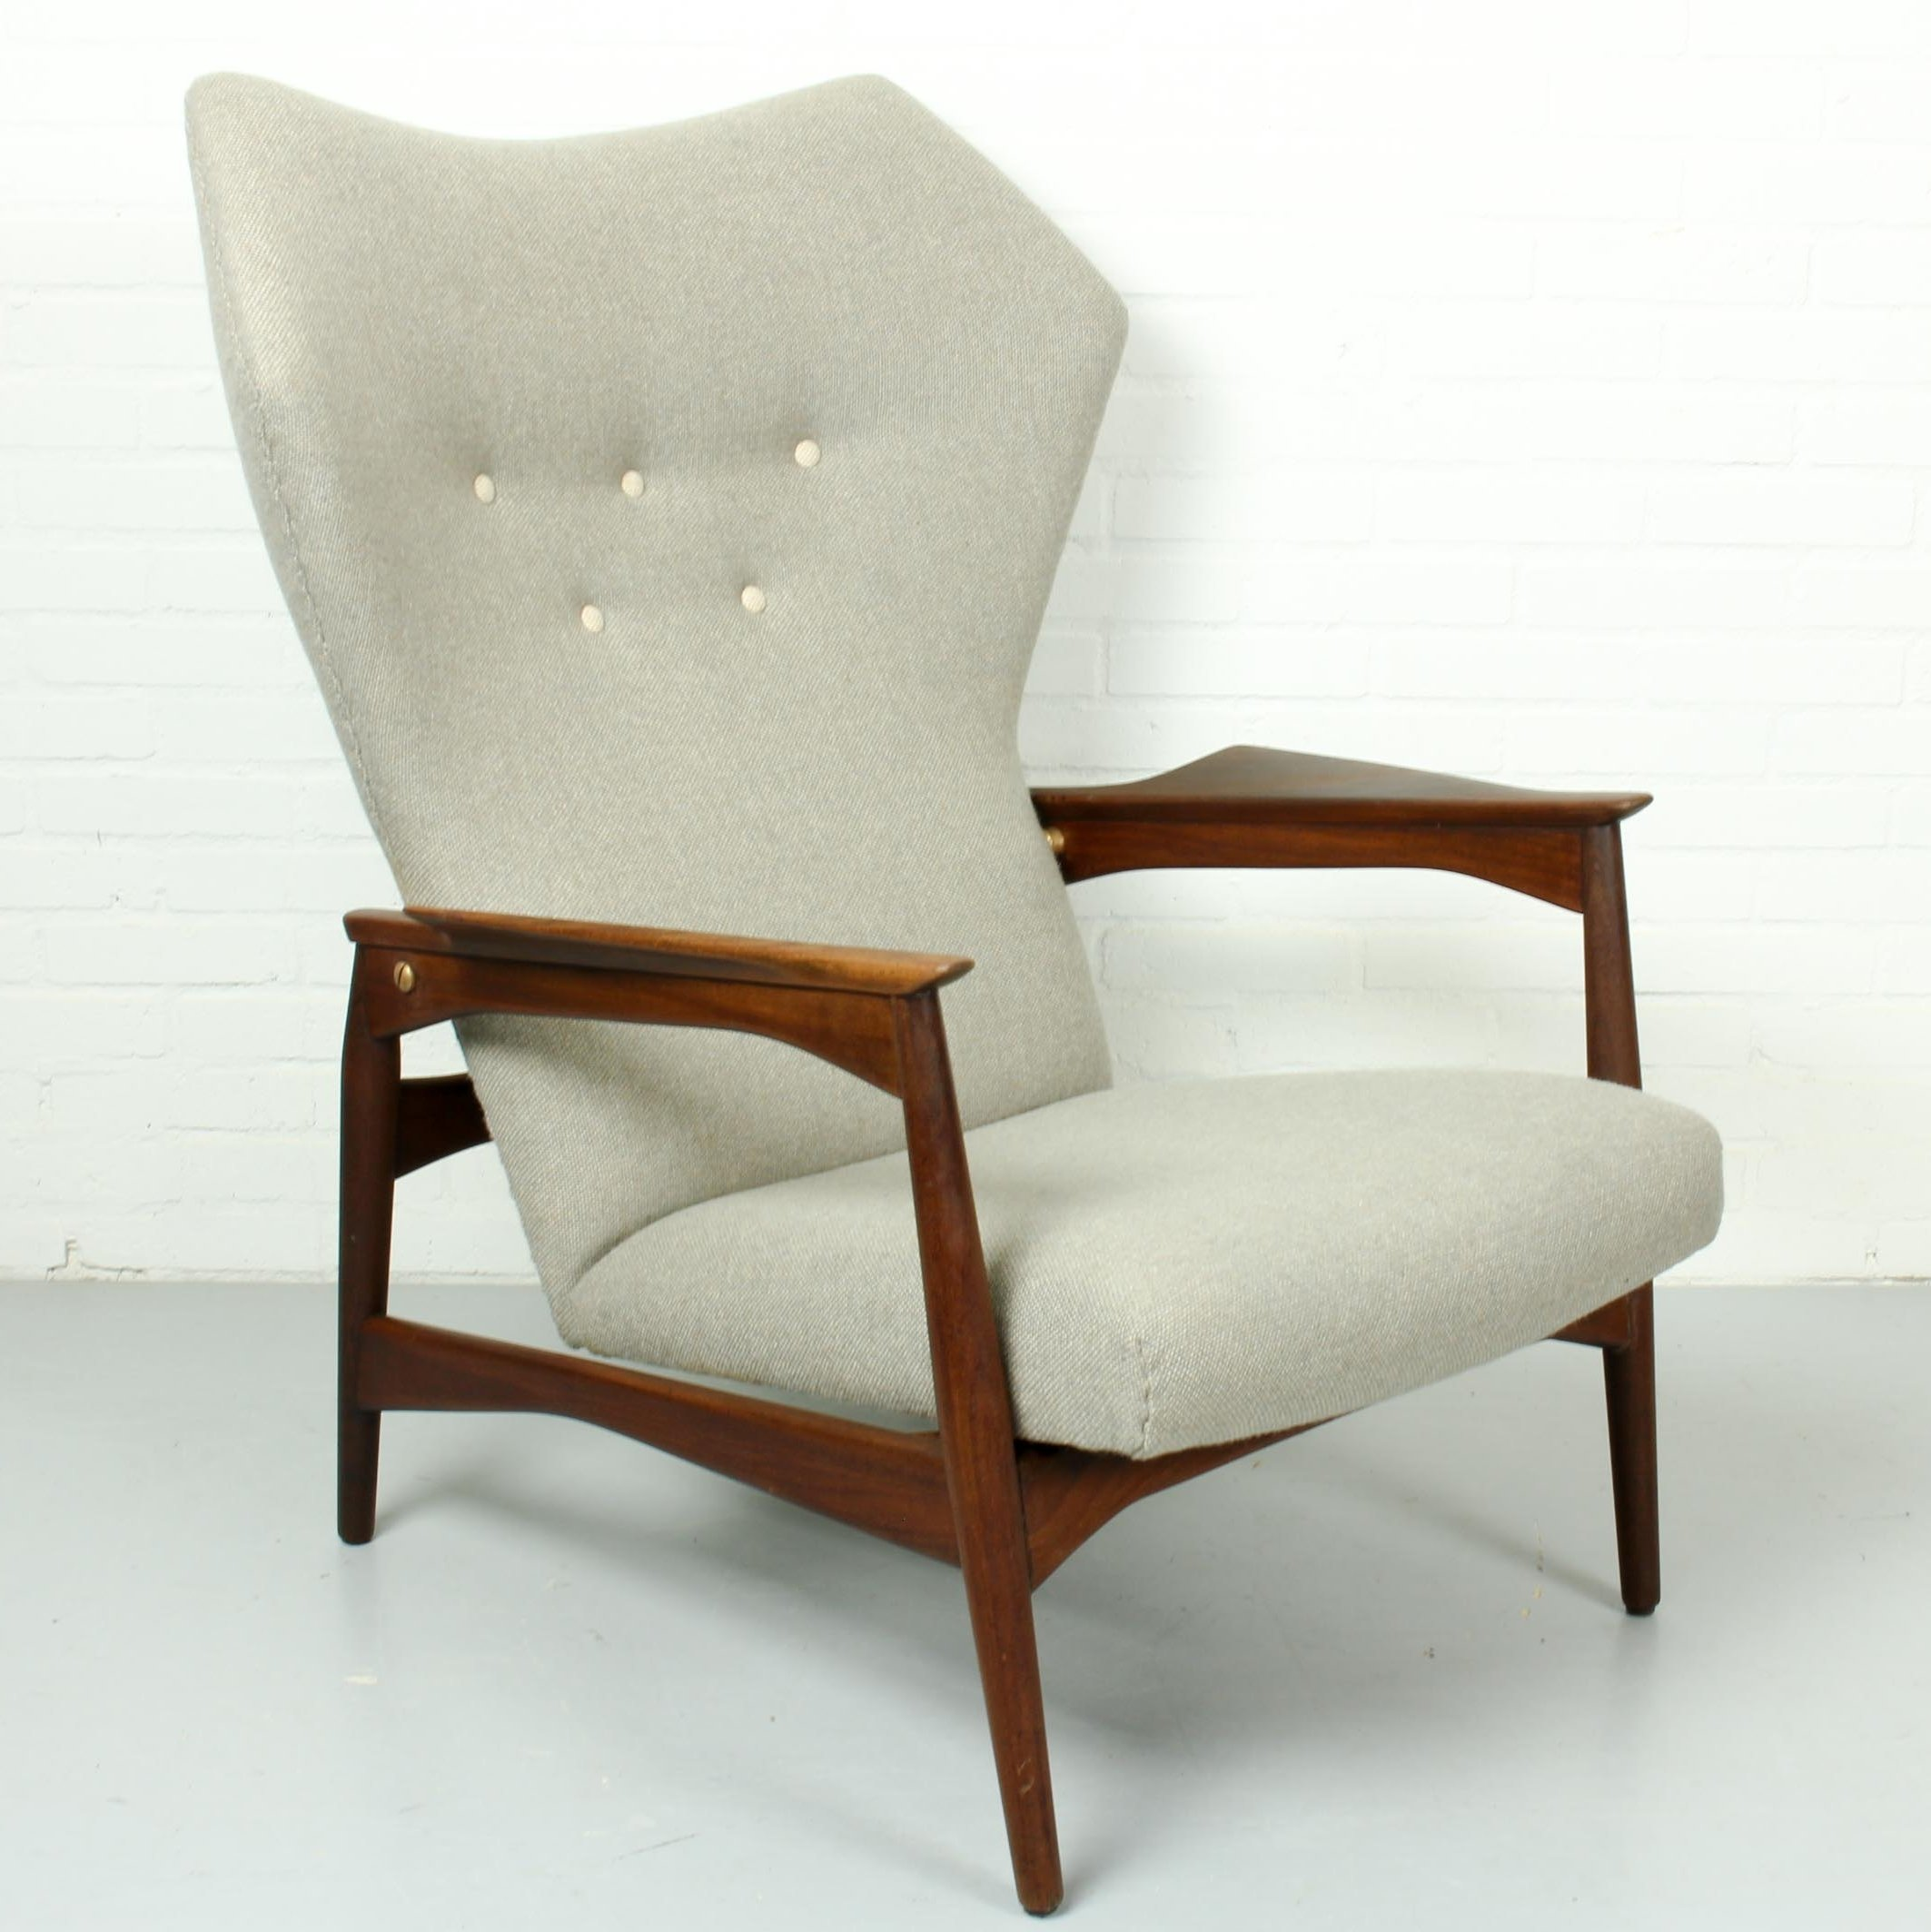 Danish Ib Kofod Larsen Reclining Lounge Chair, 1960s